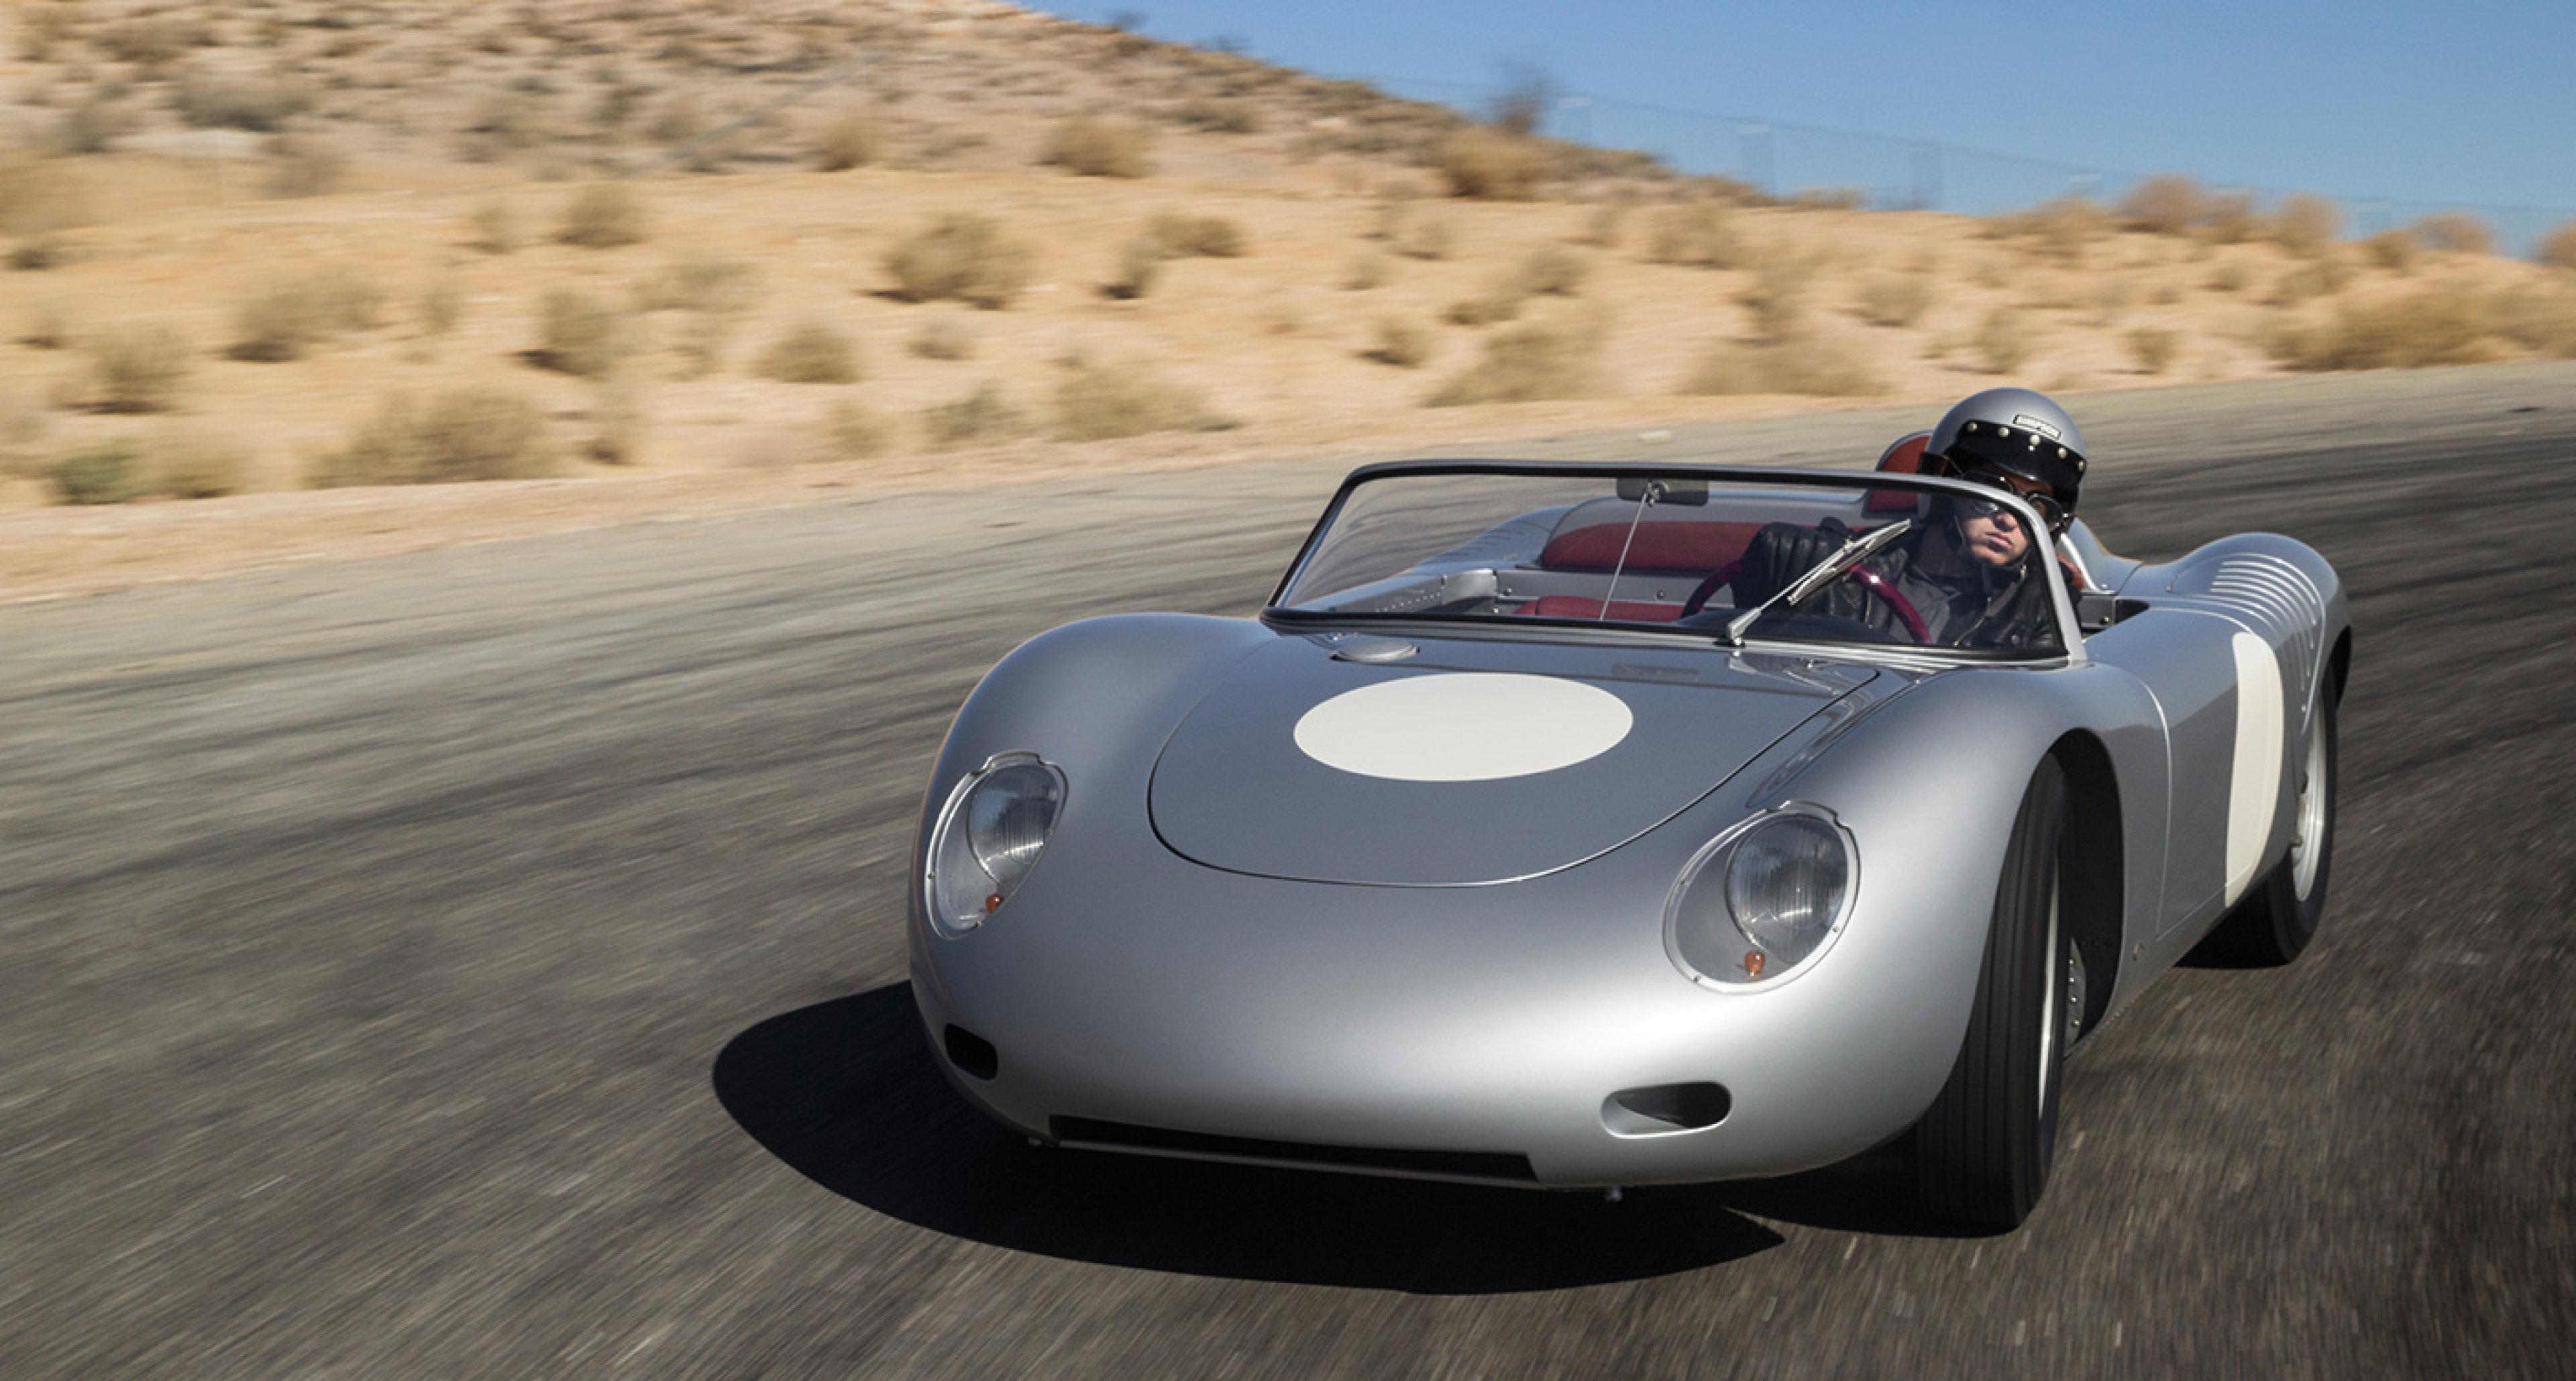 1961 Porsche 718 RS 61 Spyder sold by RM for $2,750,000